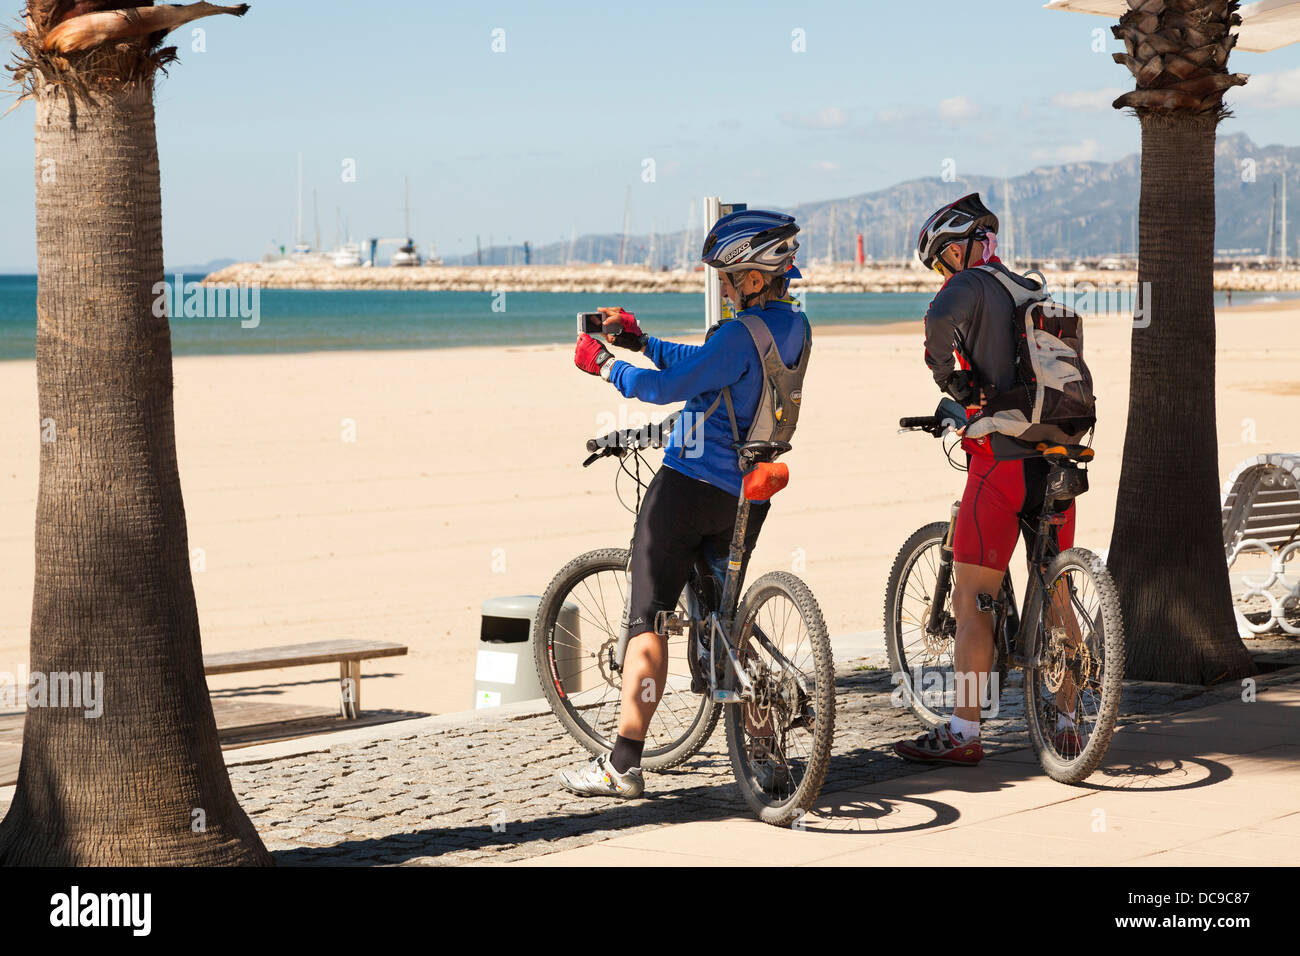 two cyclists photographing seafront at Cambrils on mobile phones - Stock Image